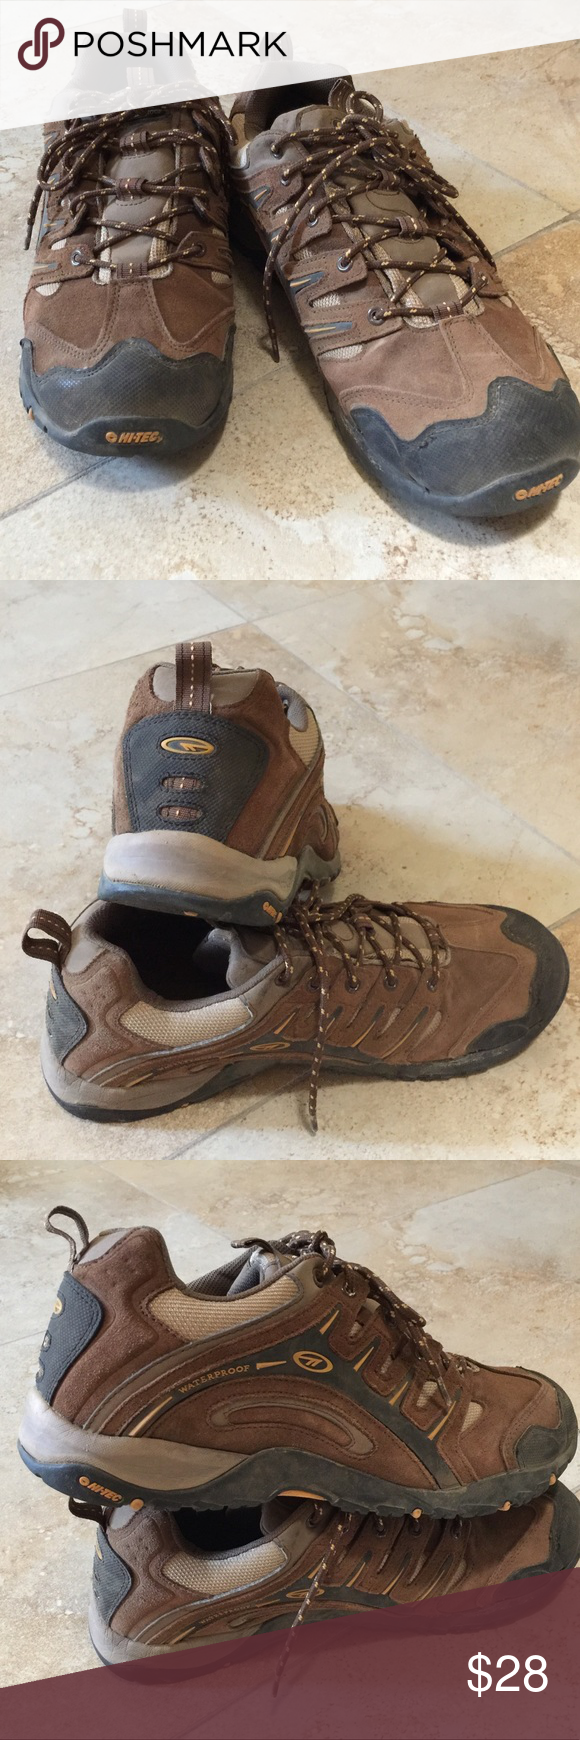 Hi-Tec man's shoes size 12. Used but great condition, brown color. Hi-Tec Shoes Sneakers